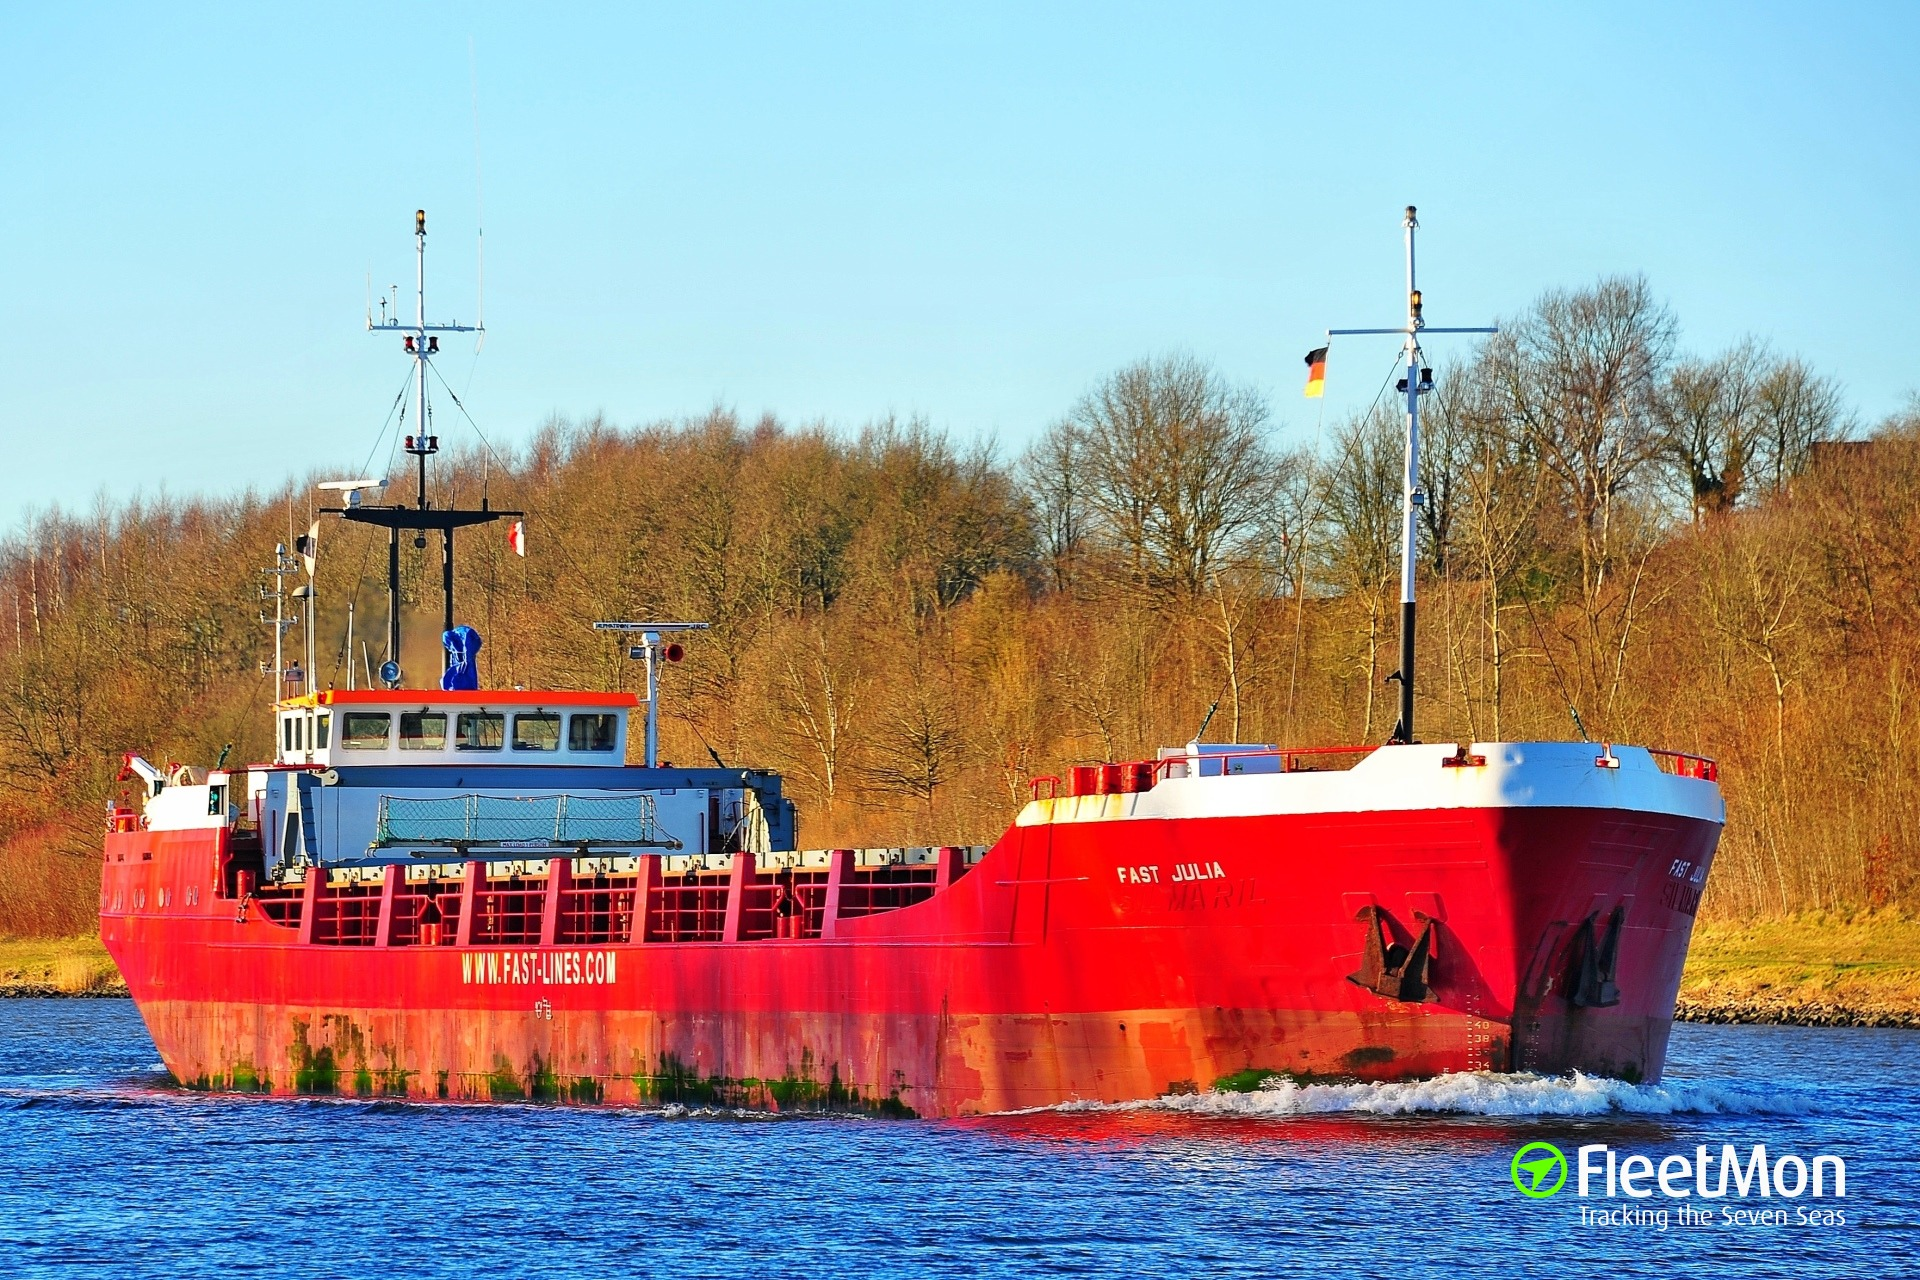 General cargo vessel Fast Julia grounding